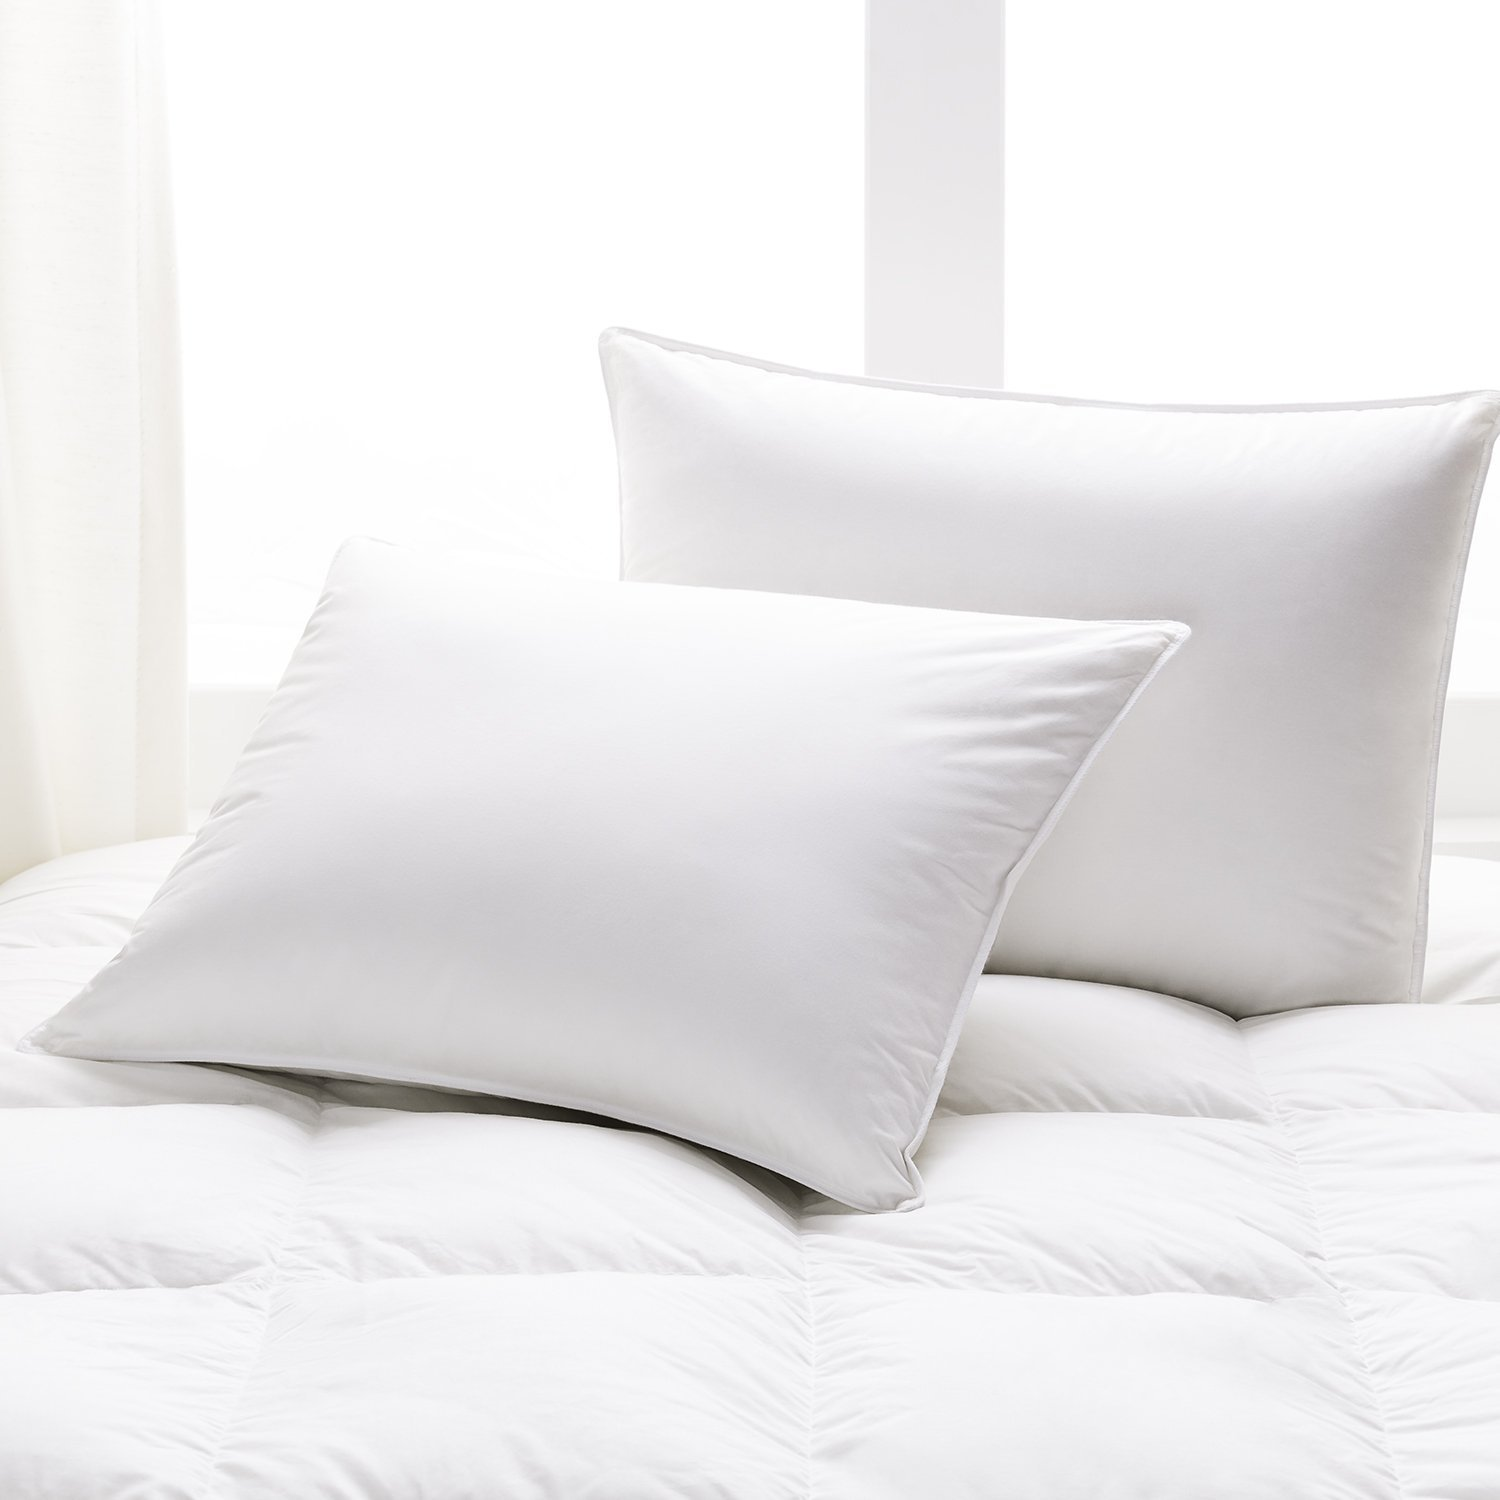 Coastal Comfort Gel Pillow (2-Pack) - Luxury Hotel Quality